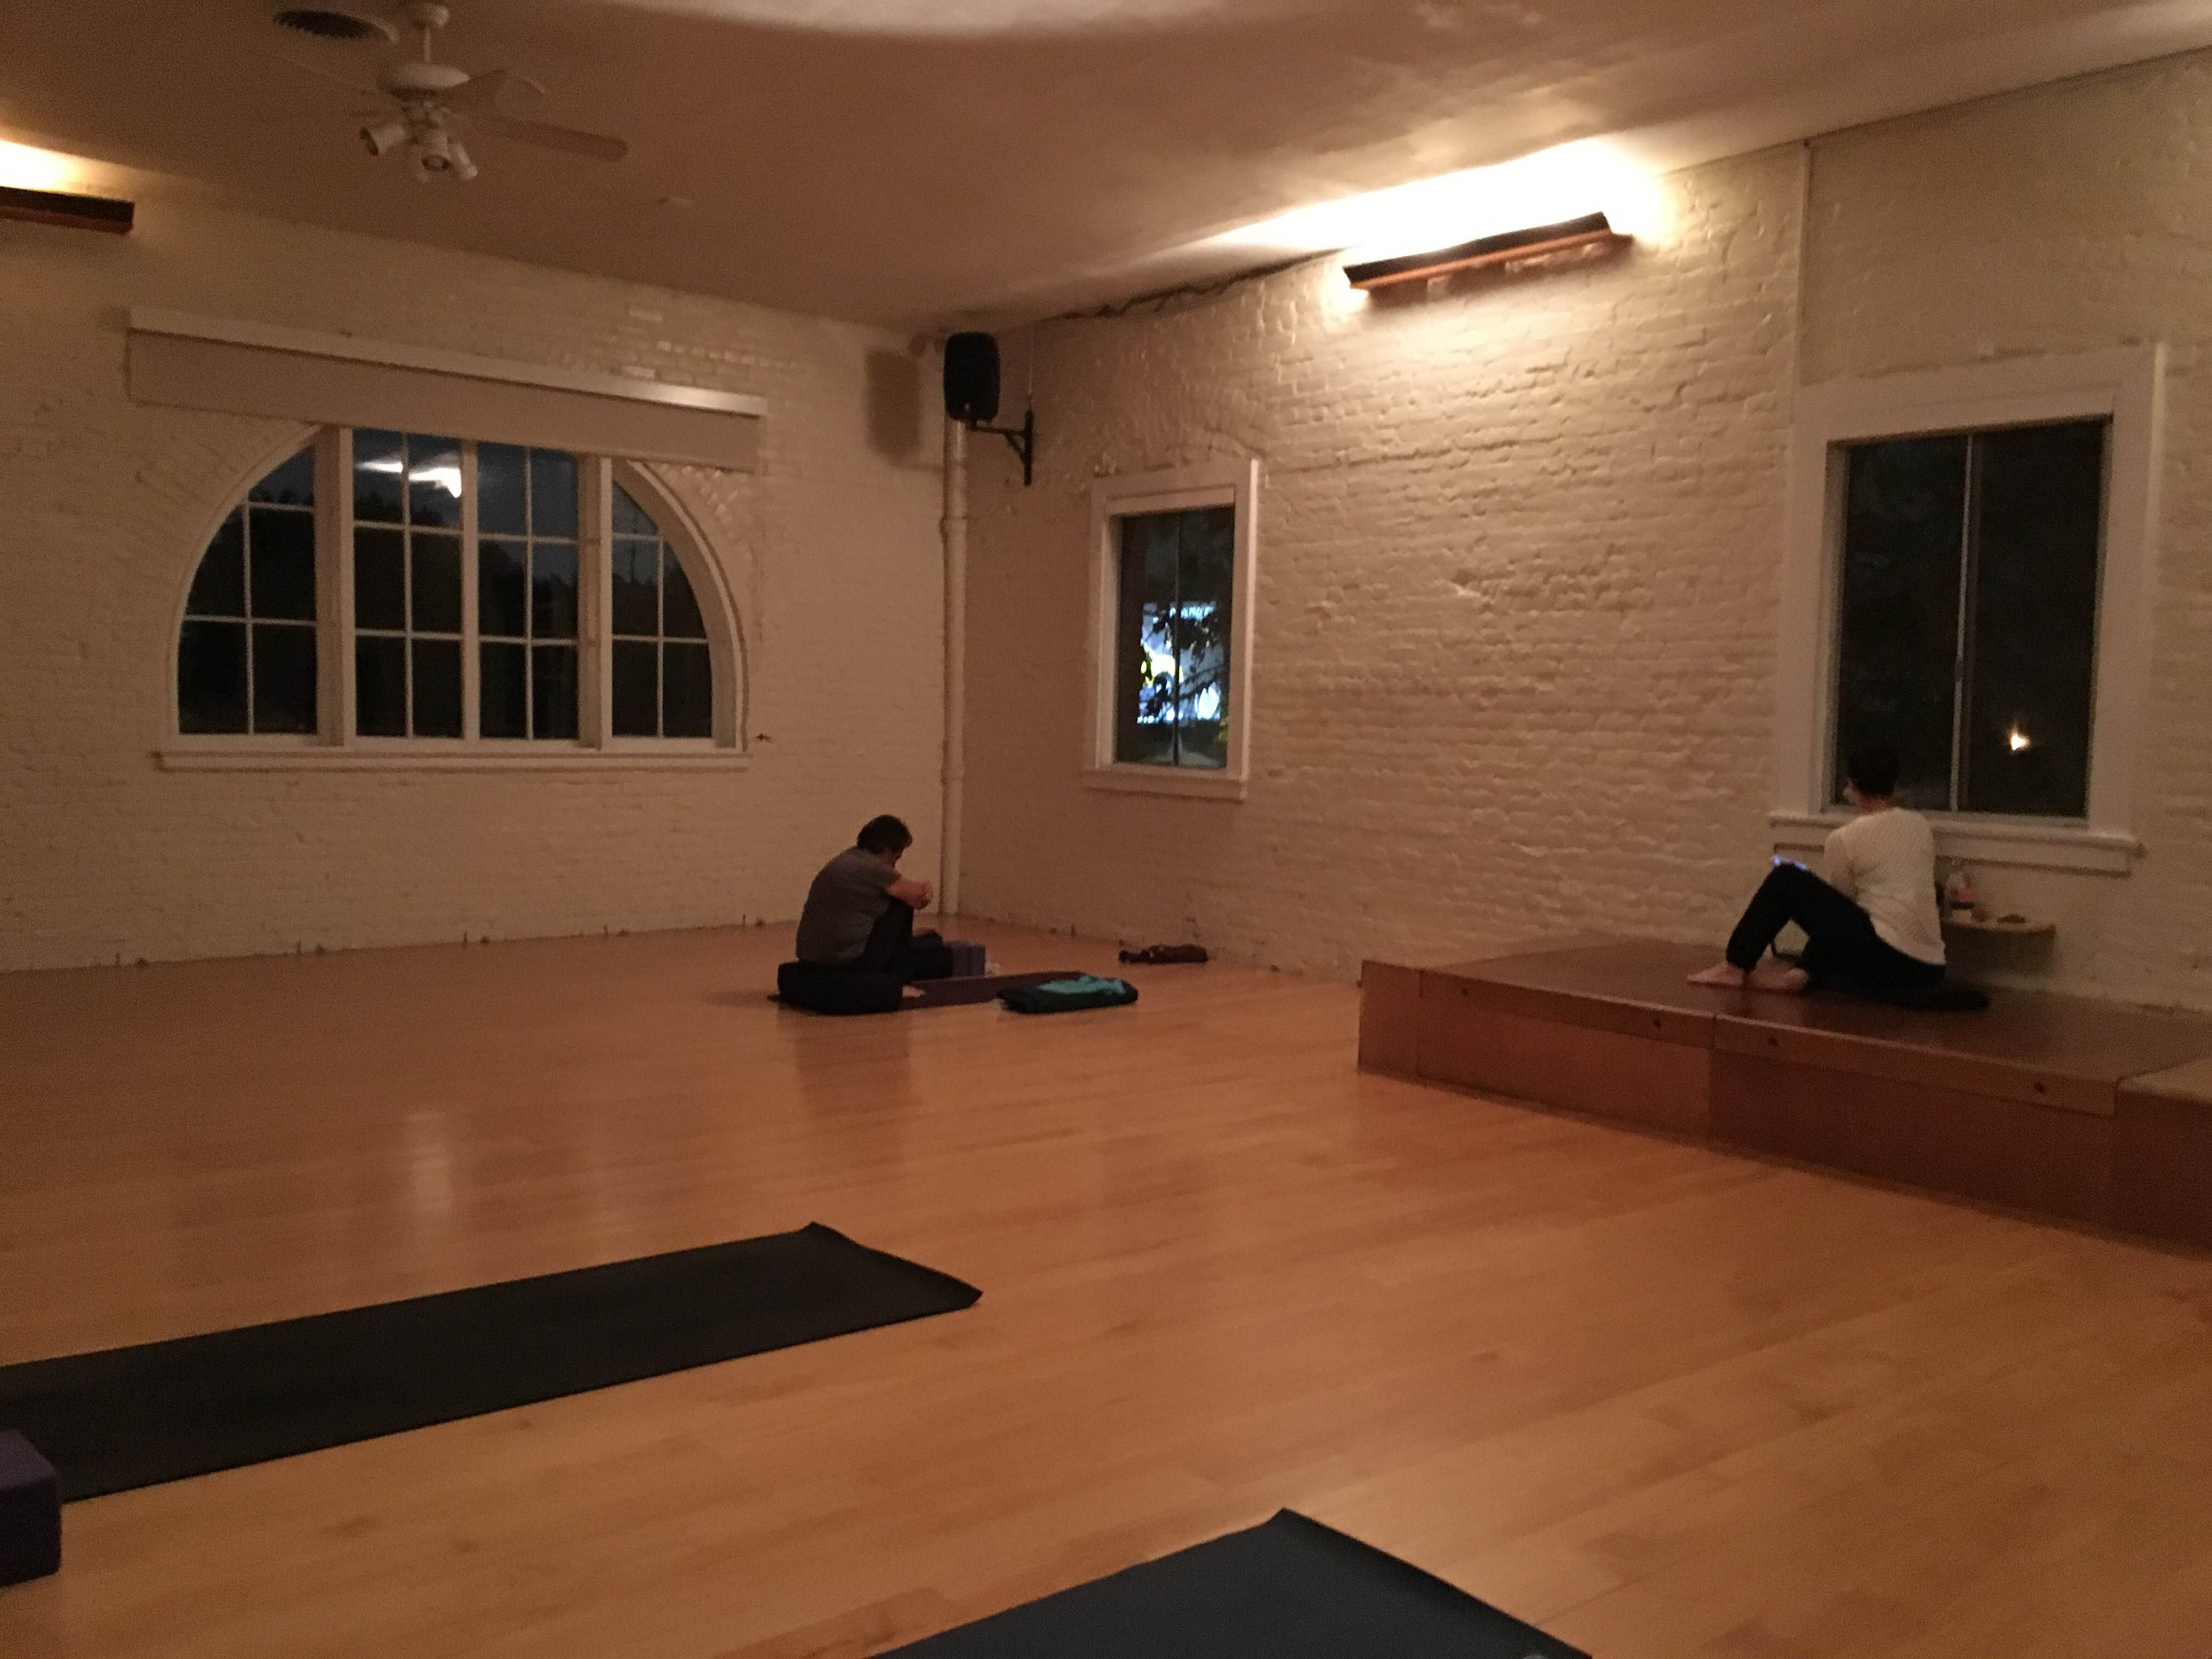 Restorative At Yogaworks West Hollywood Sweat And Repeat